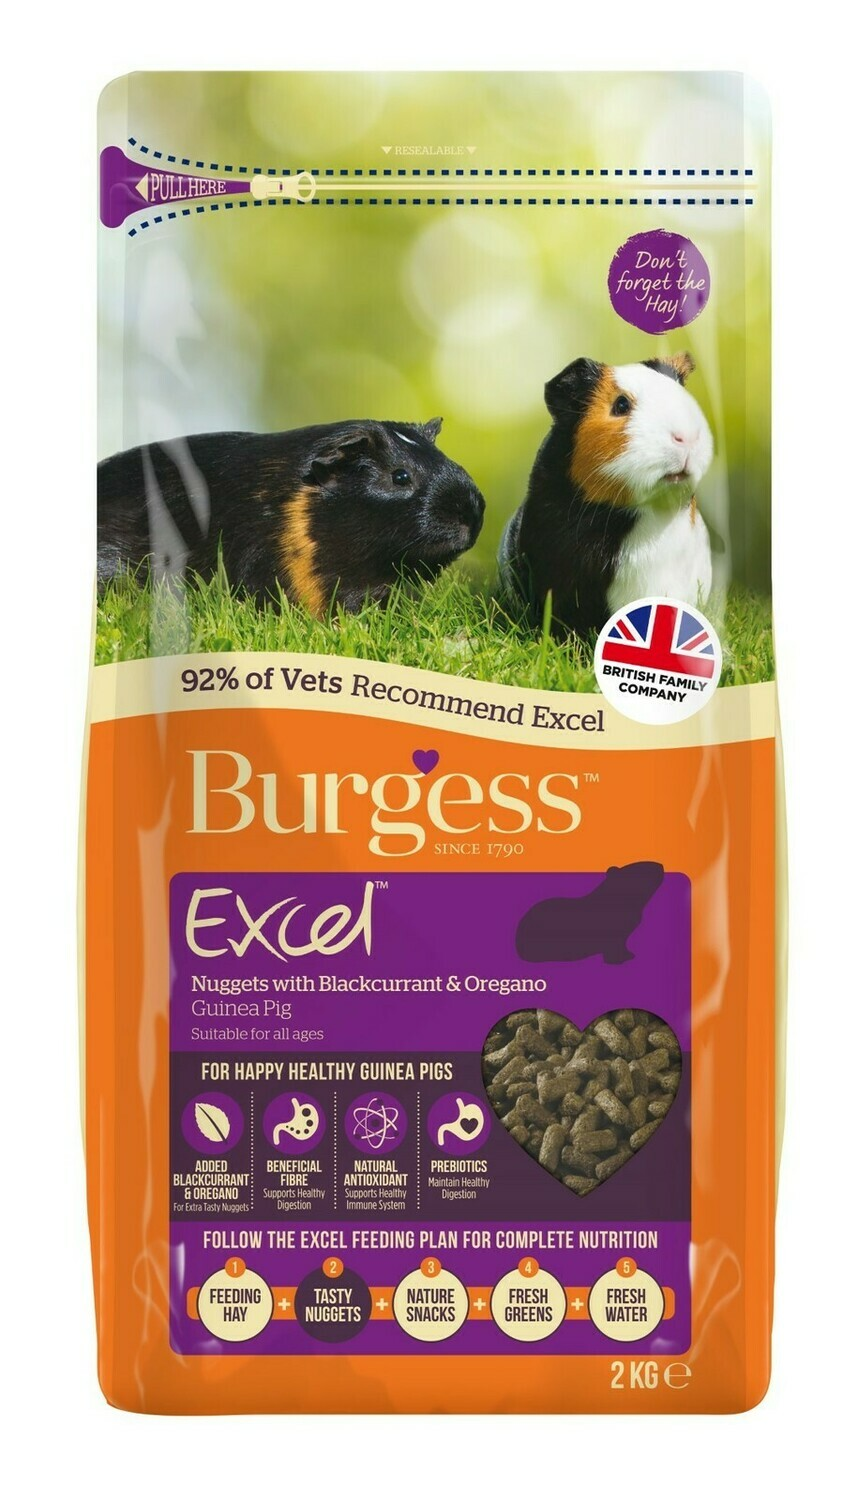 Burgess Mint For Guinea Pigs - Blackcurrant and Oregano- 2KG bags